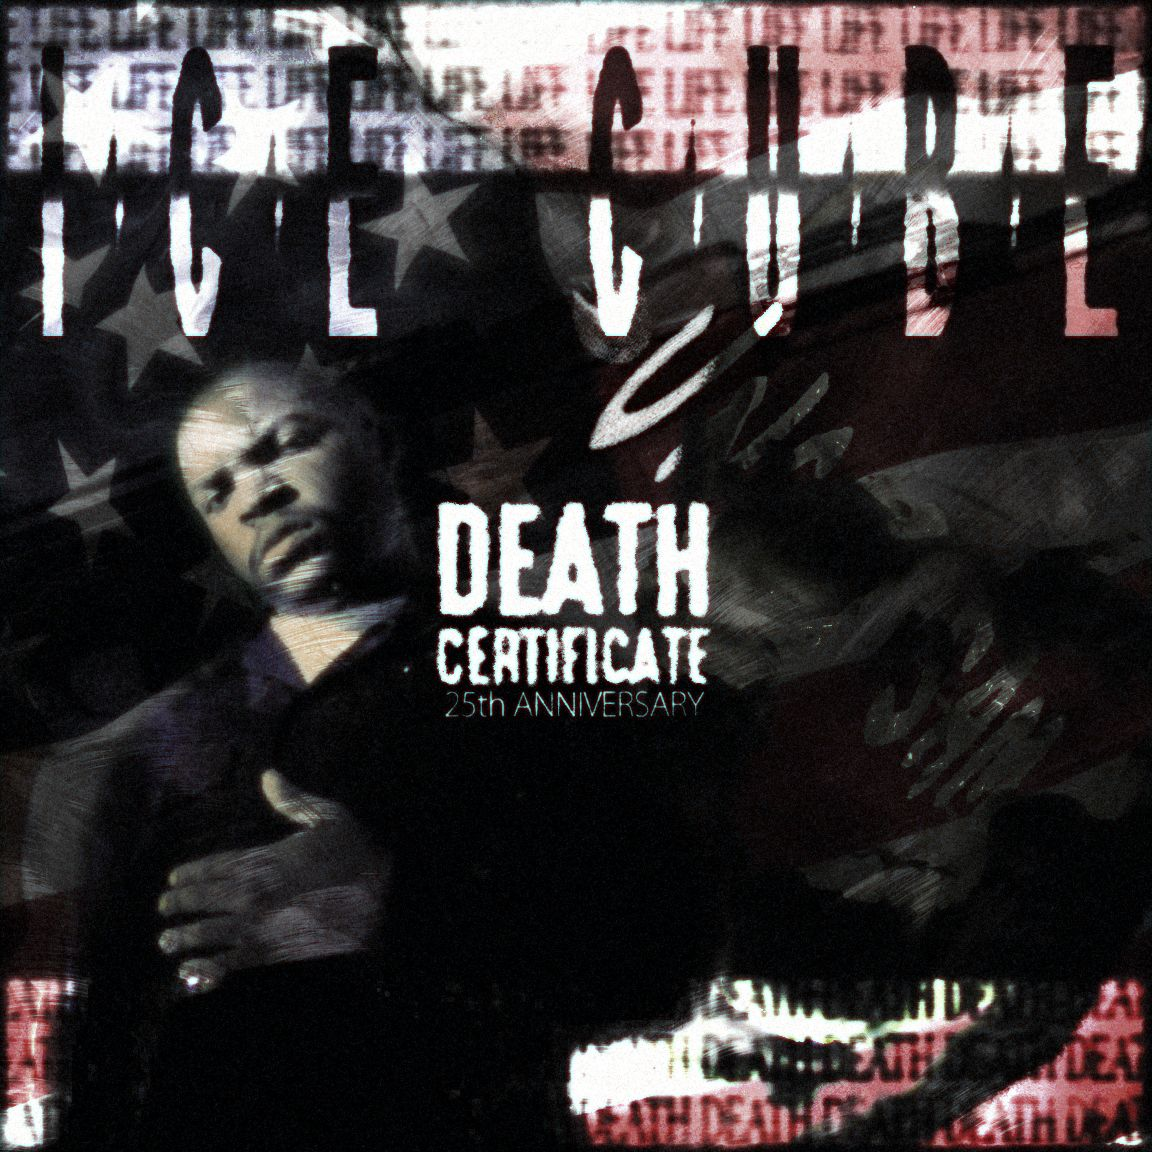 Death Certificate 25th Anniversary Competition By Bobo Teichmann